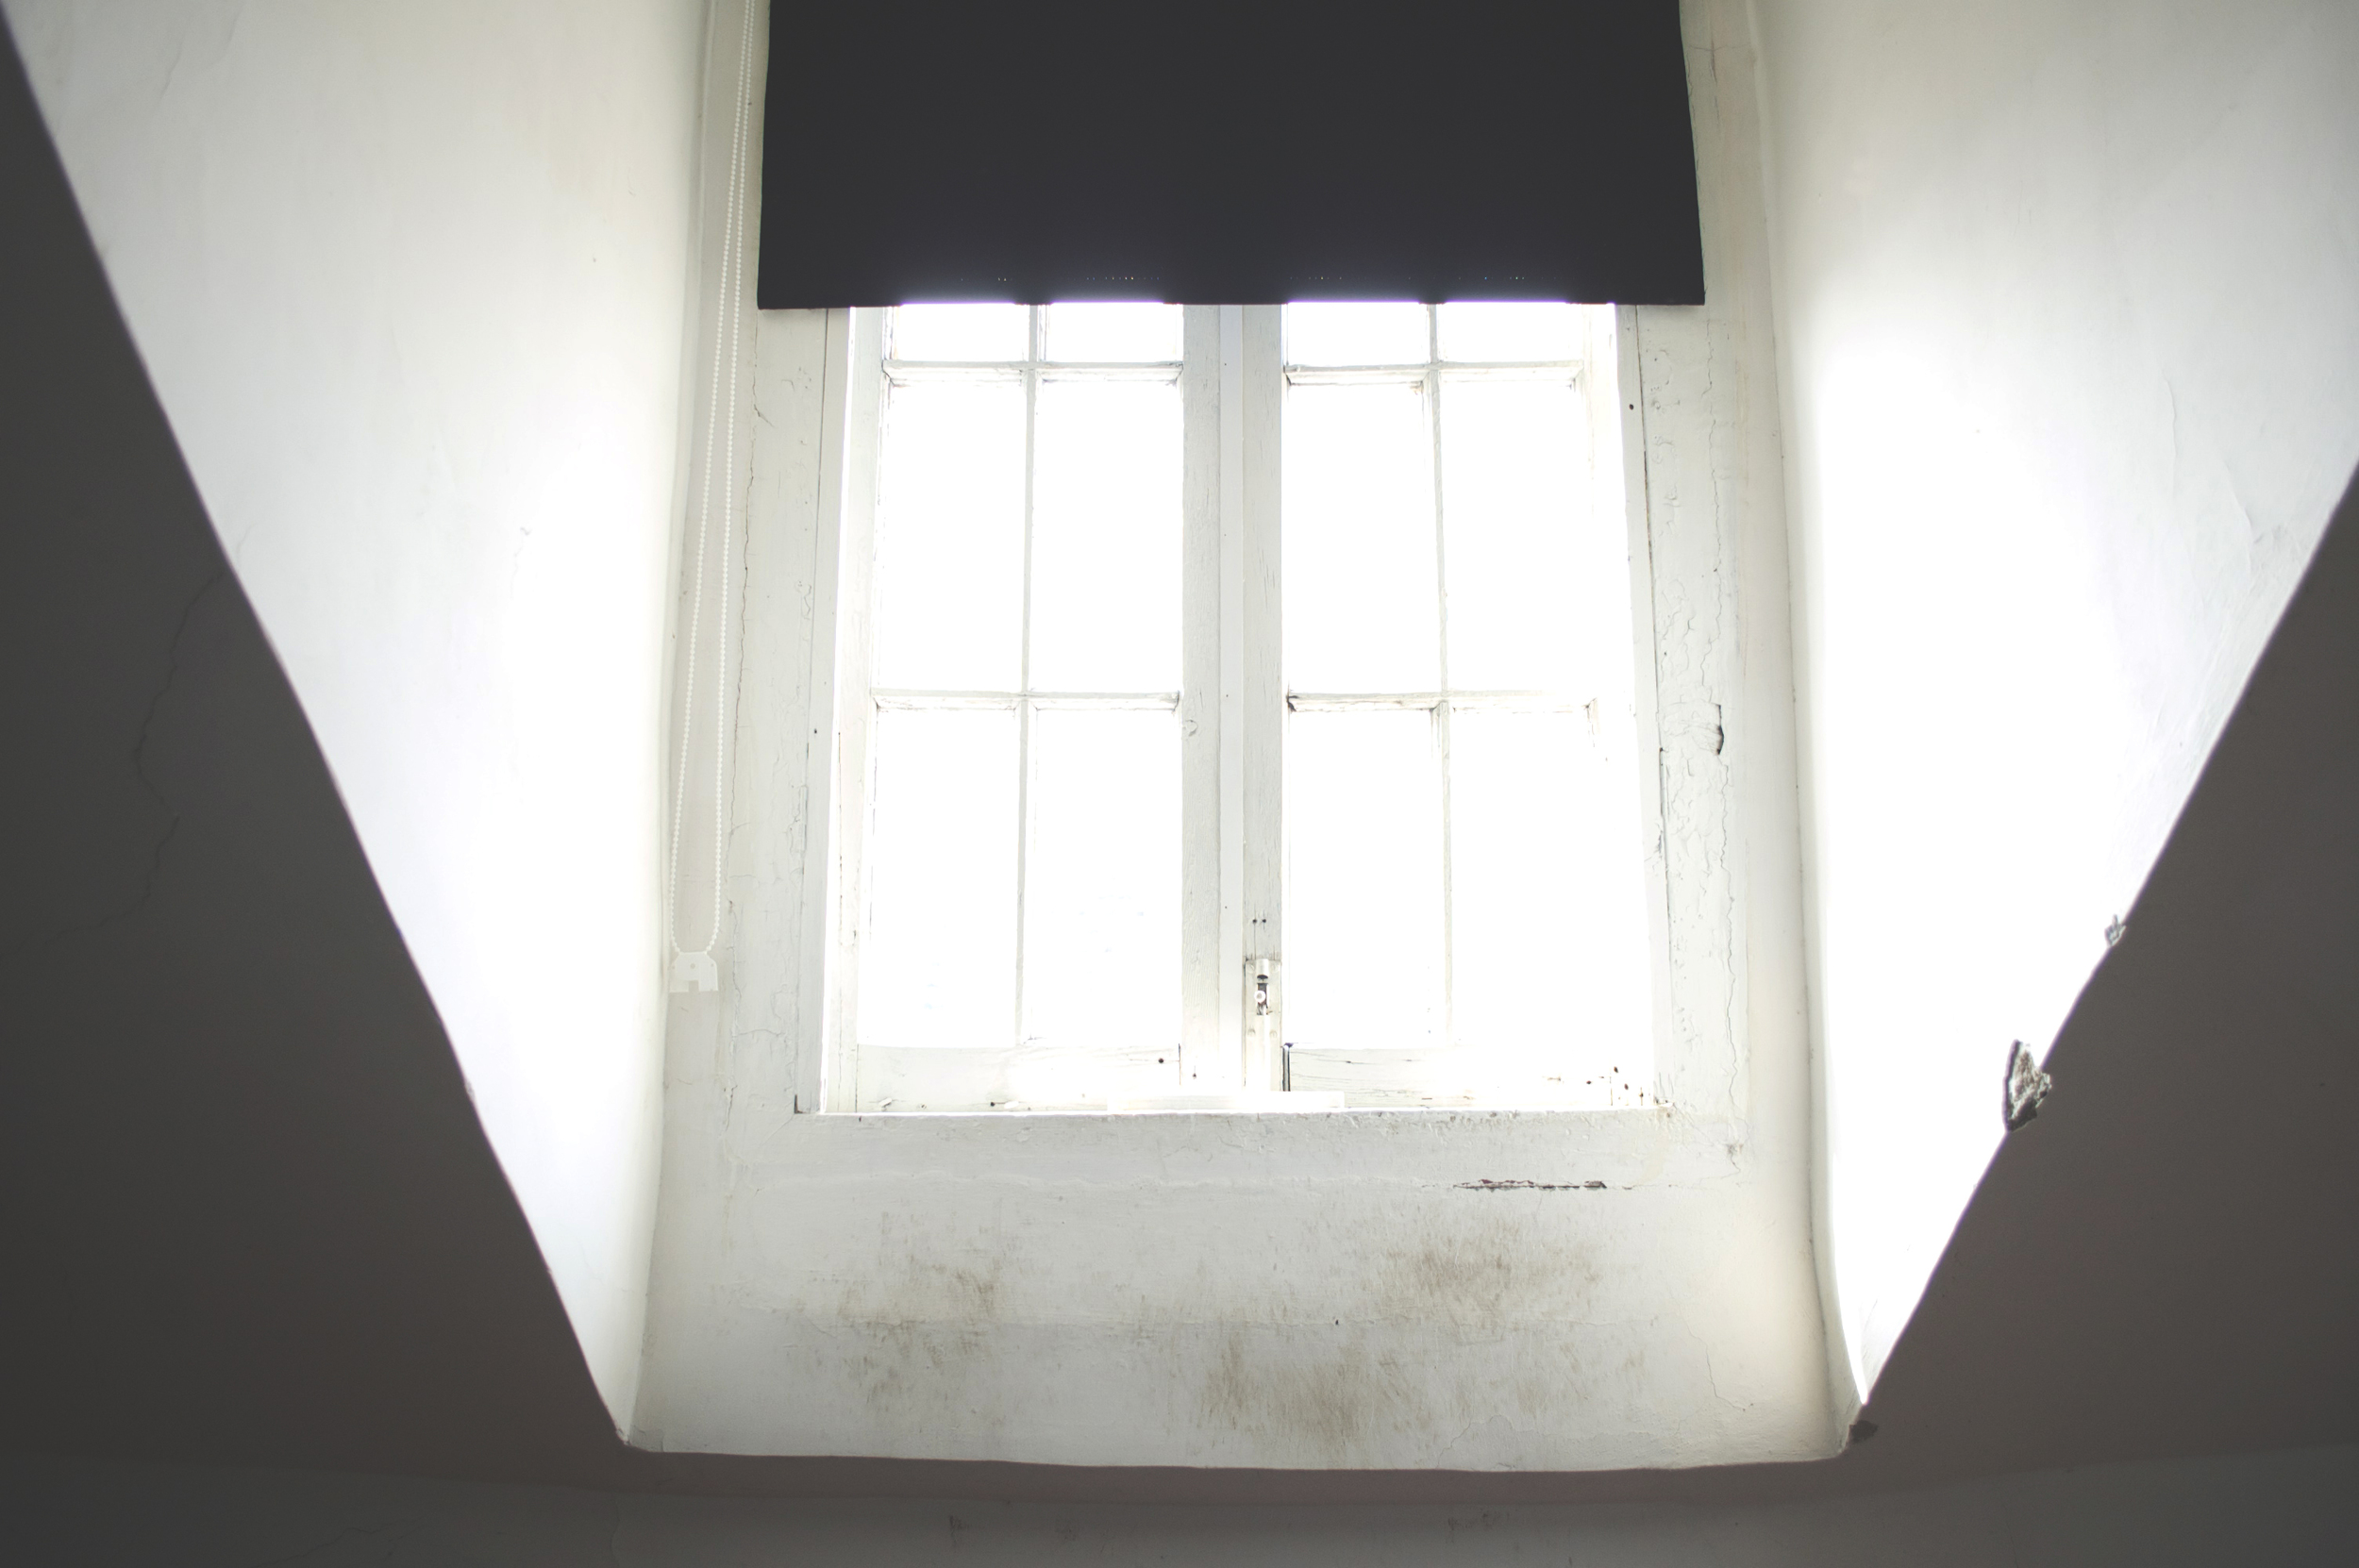 Window on a bright day. Photo by Francesca Galluzzo.